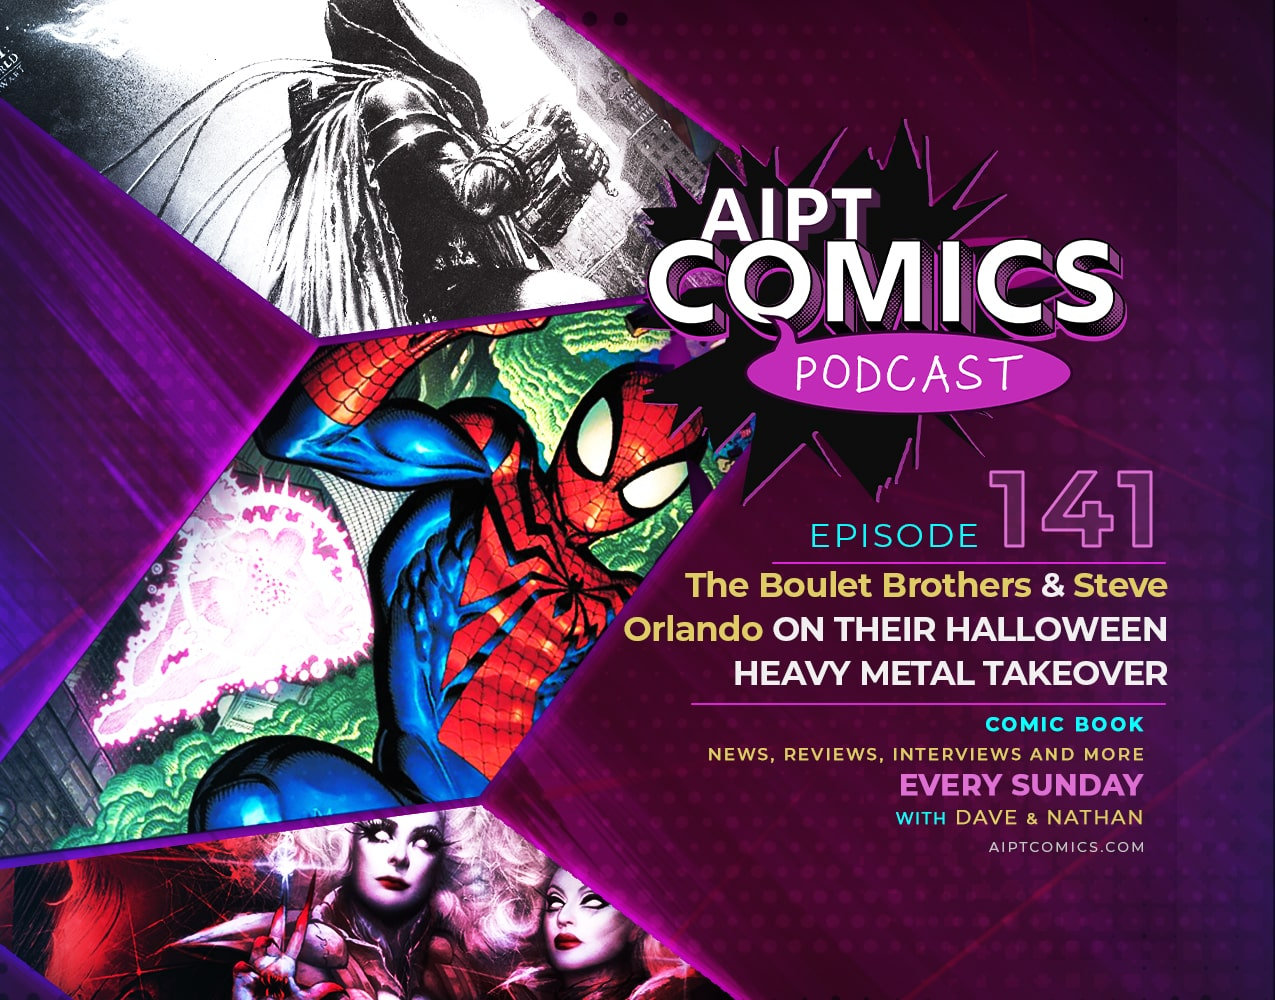 AIPT Comics Podcast episode 141: The Boulet Brothers & Steve Orlando on their Heavy Metal Halloween takeover